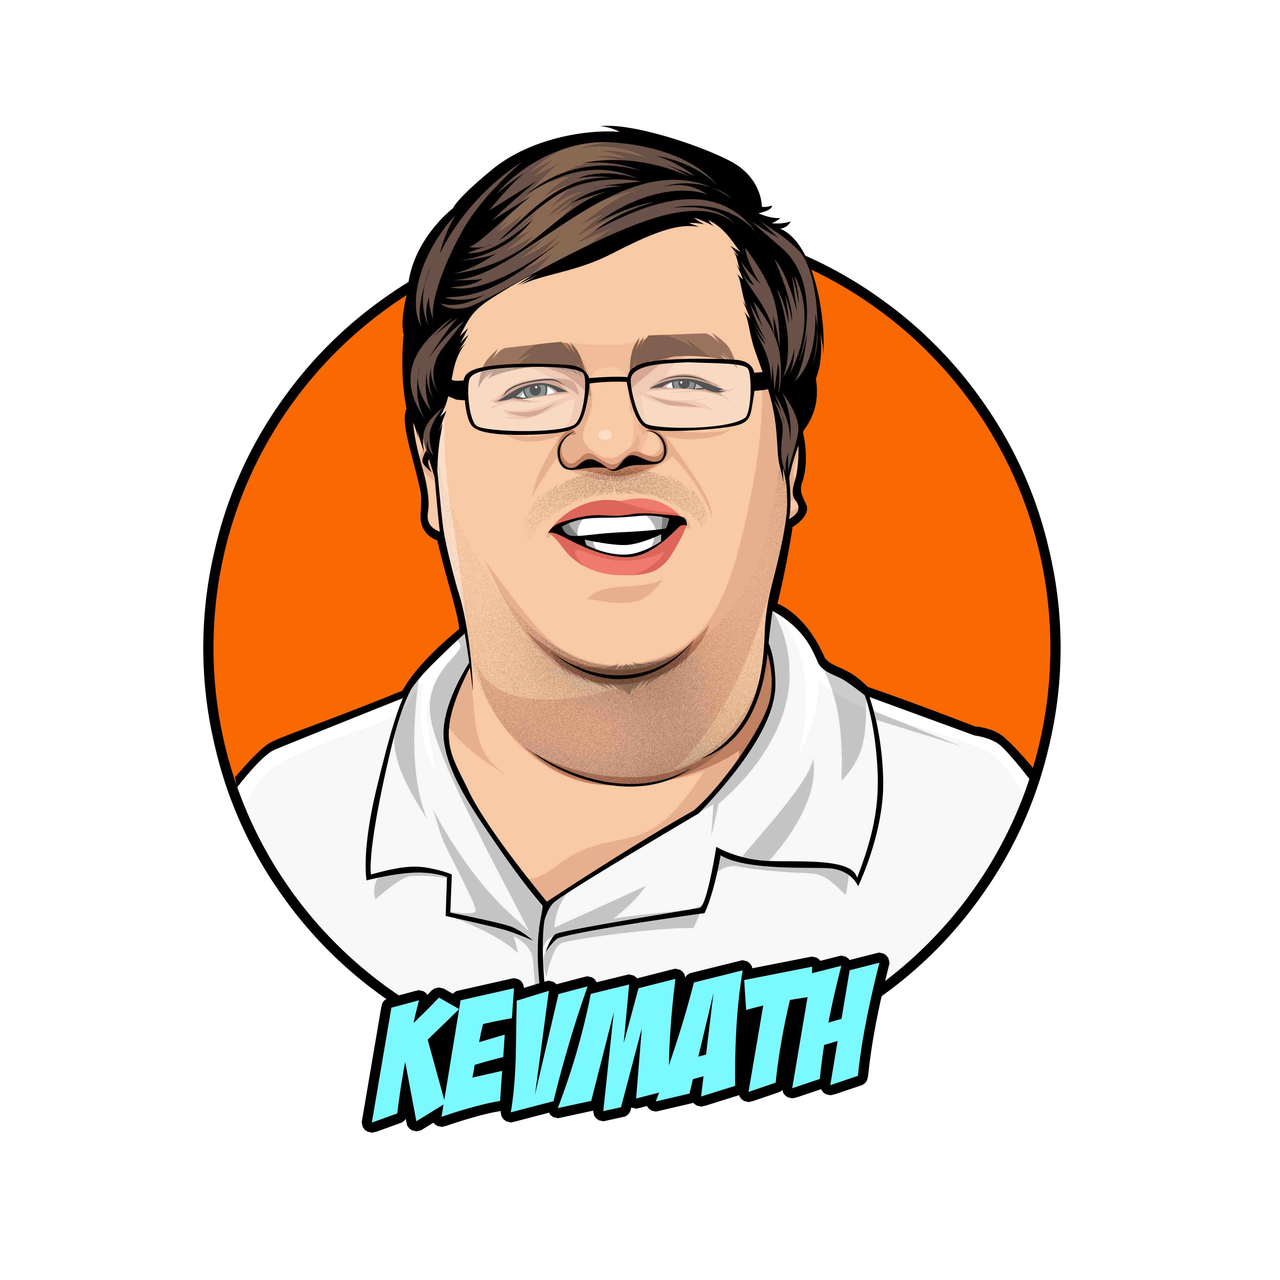 The Kevmath Report